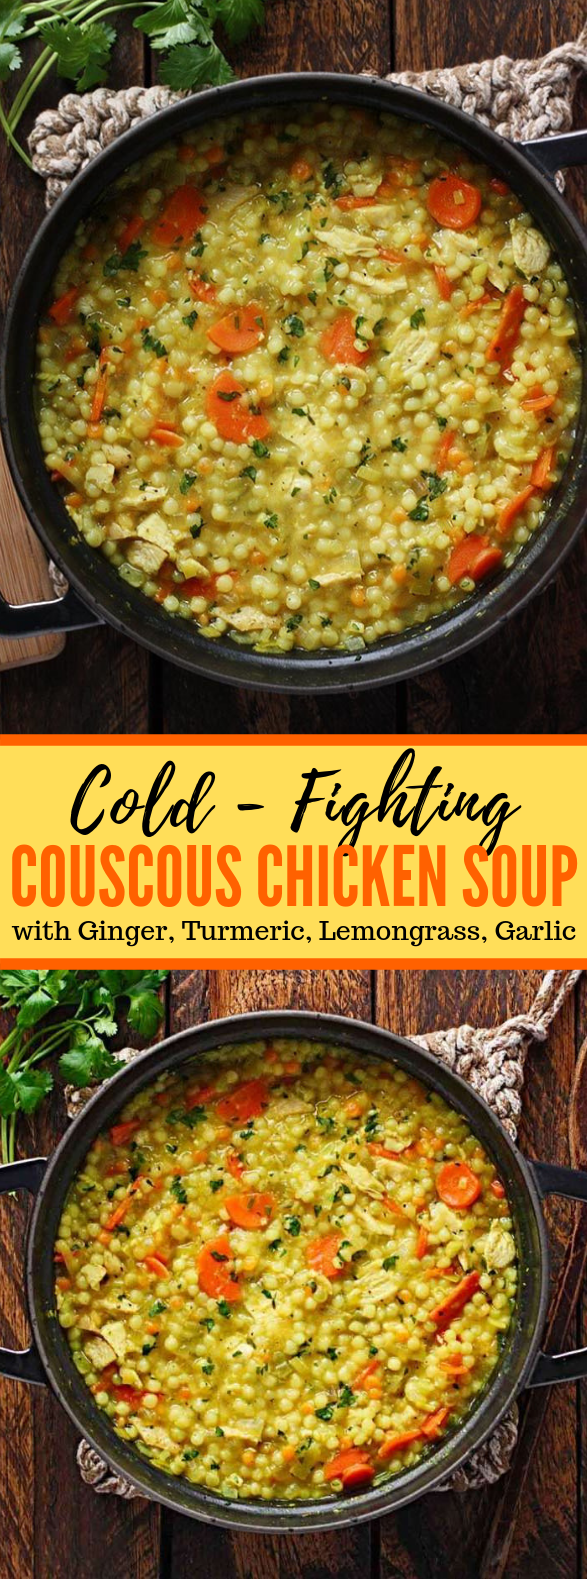 COLD-FIGHTING COUSCOUS CHICKEN SOUP #healthysoup #comfortfood